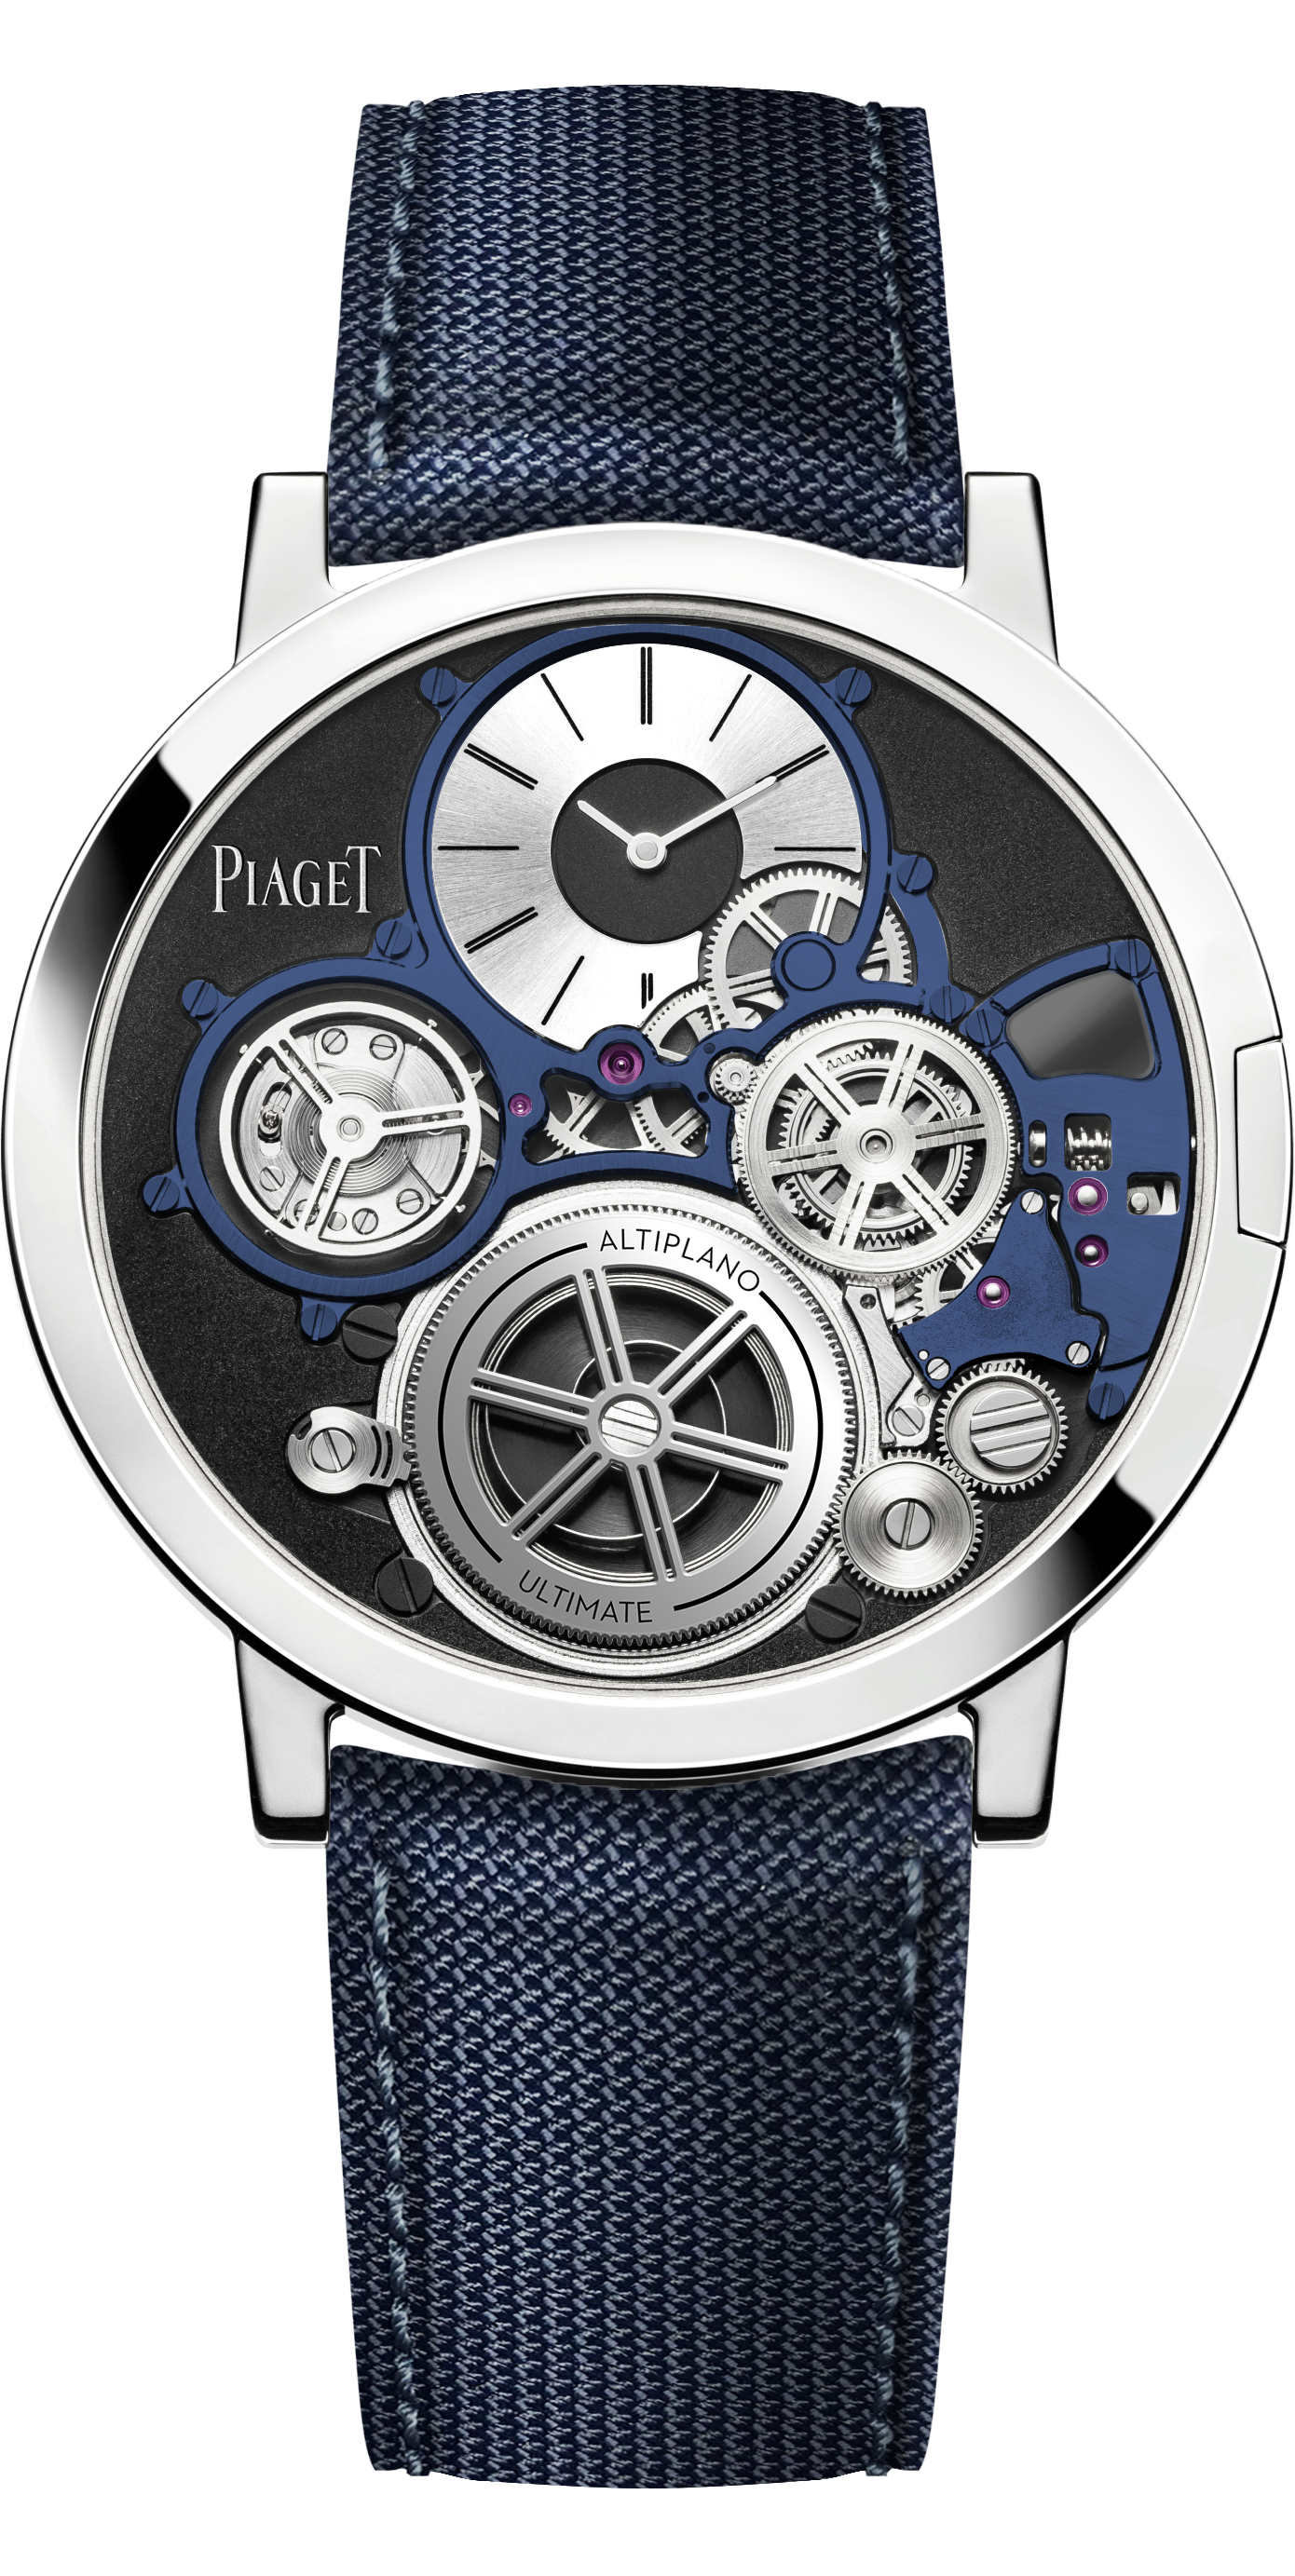 Piaget Altiplano Ultimate Concept, Image: Piaget